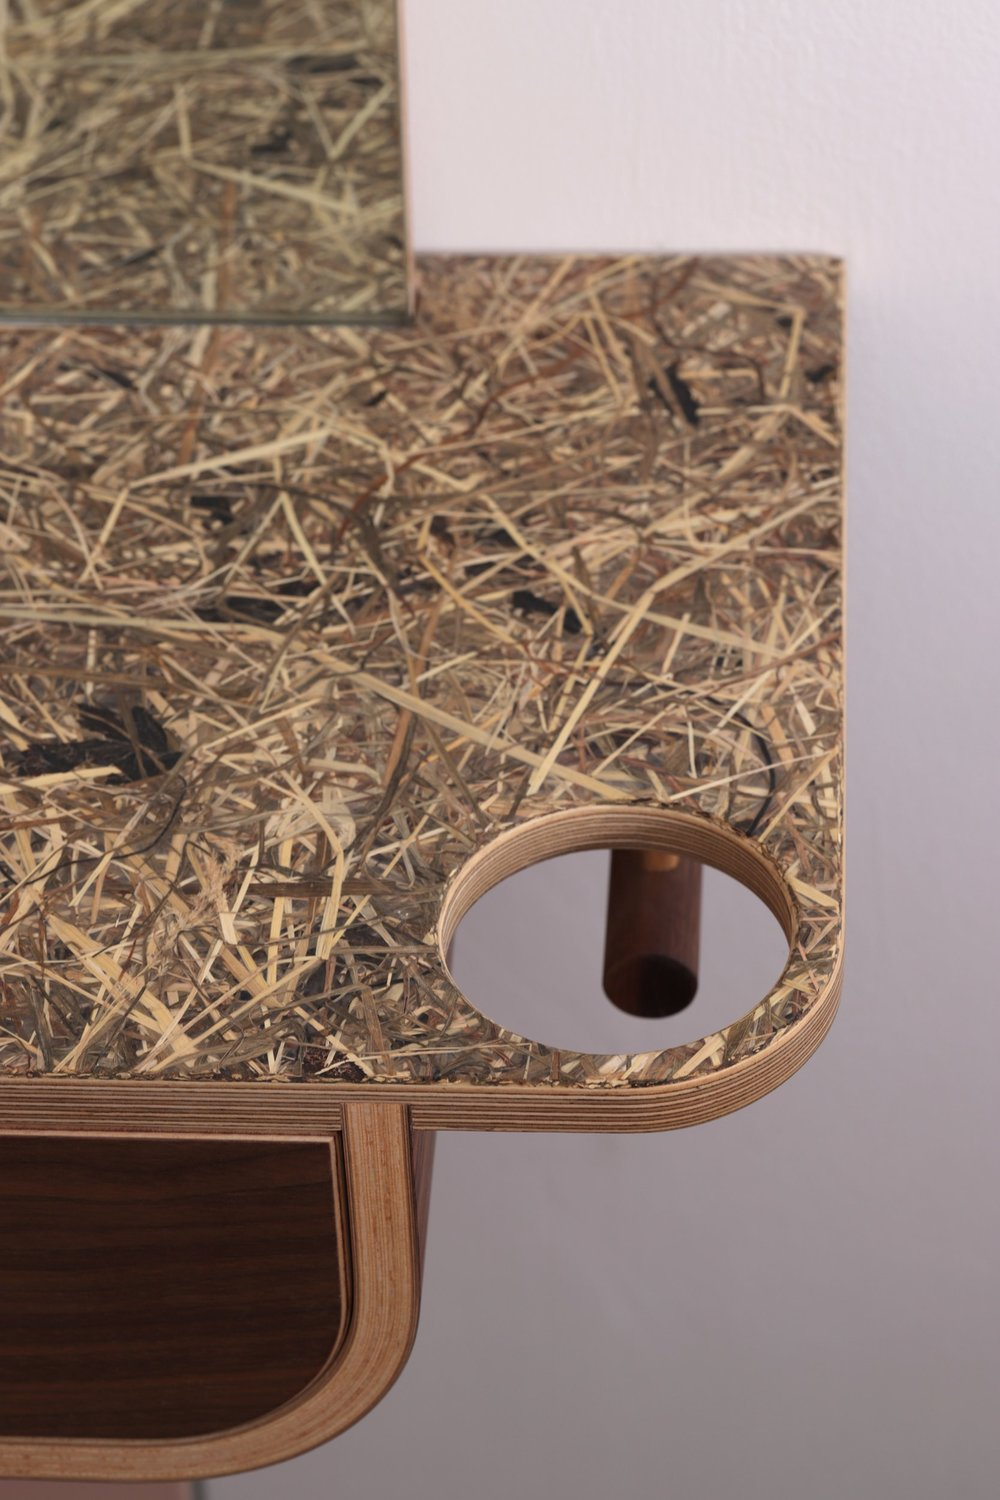 Bio Laminate technology was used to create the surfaces.